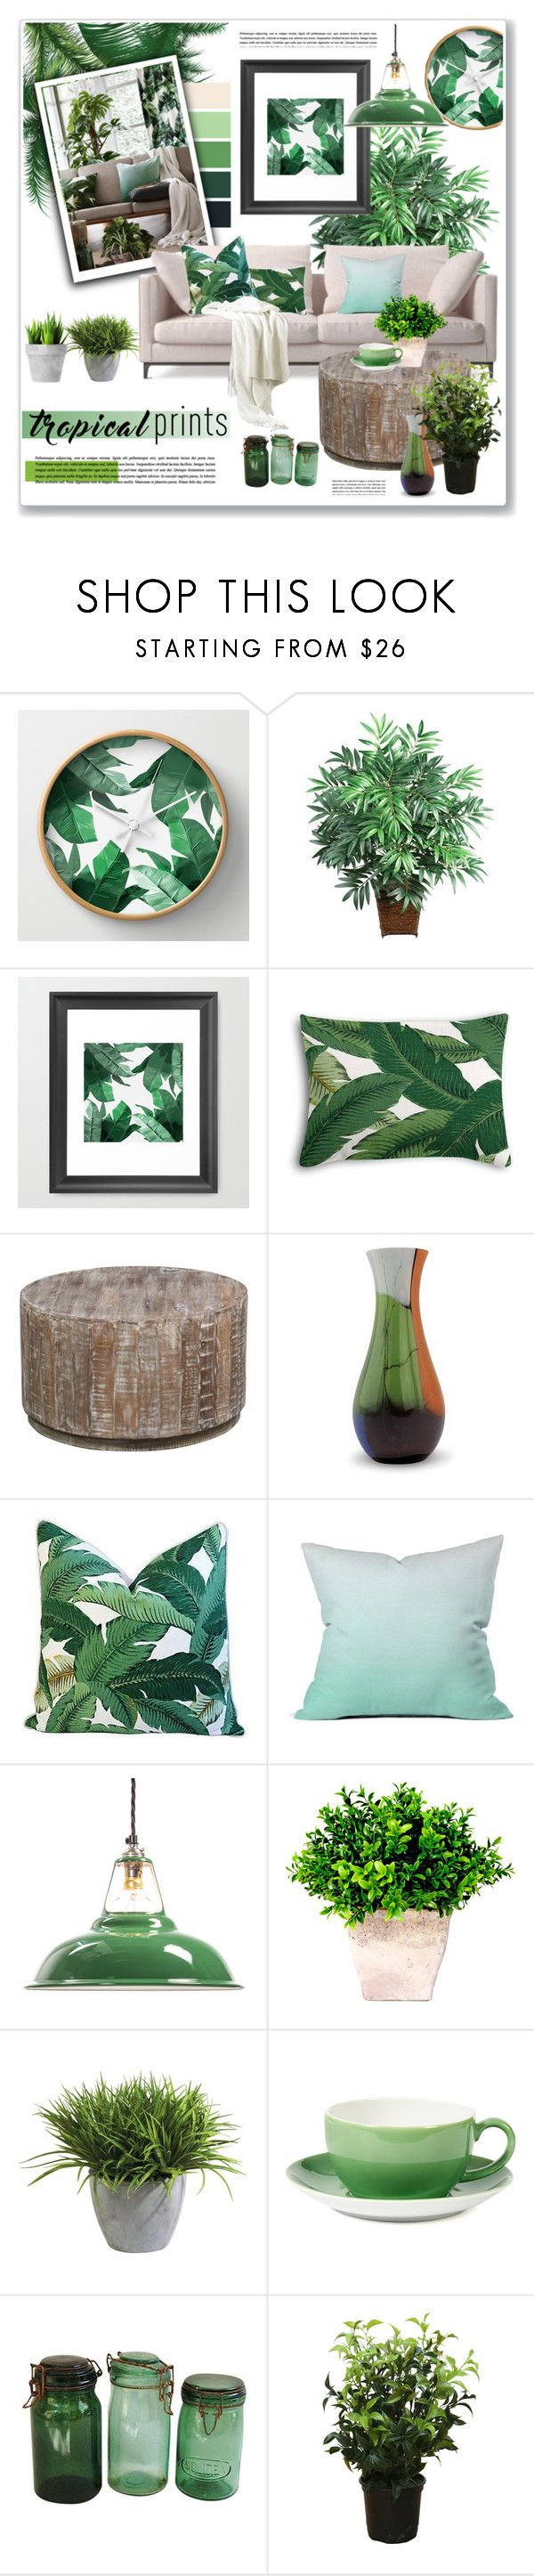 """""""tropical prints living room"""" by nanawidia ❤ liked on Polyvore featuring interior, interiors, interior design, home, home decor, interior decorating, Nearly Natural, Kosas Collections, NOVICA and DENY Designs"""